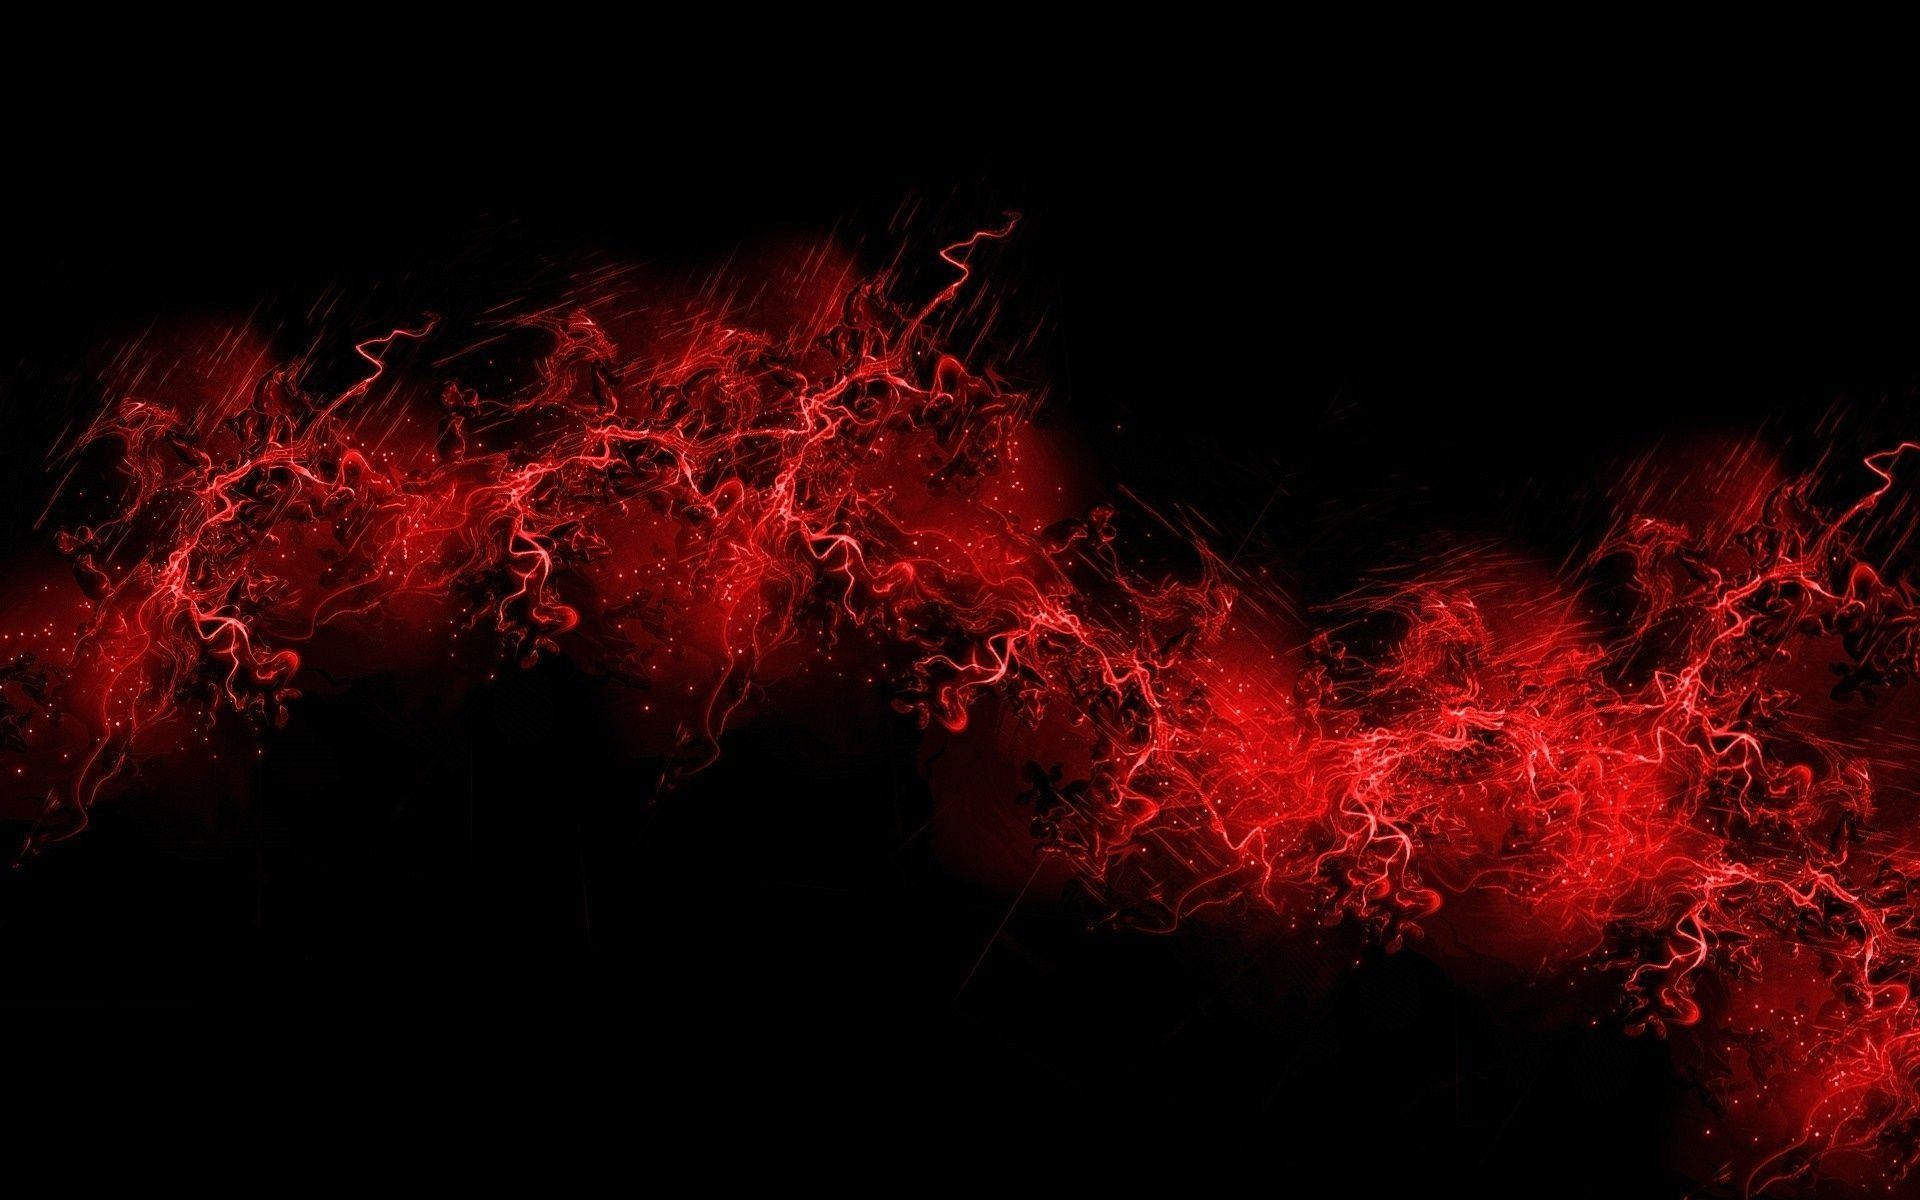 Dark Red Abstract Backgrounds Hd Widescreen 11 HD Wallpapers .